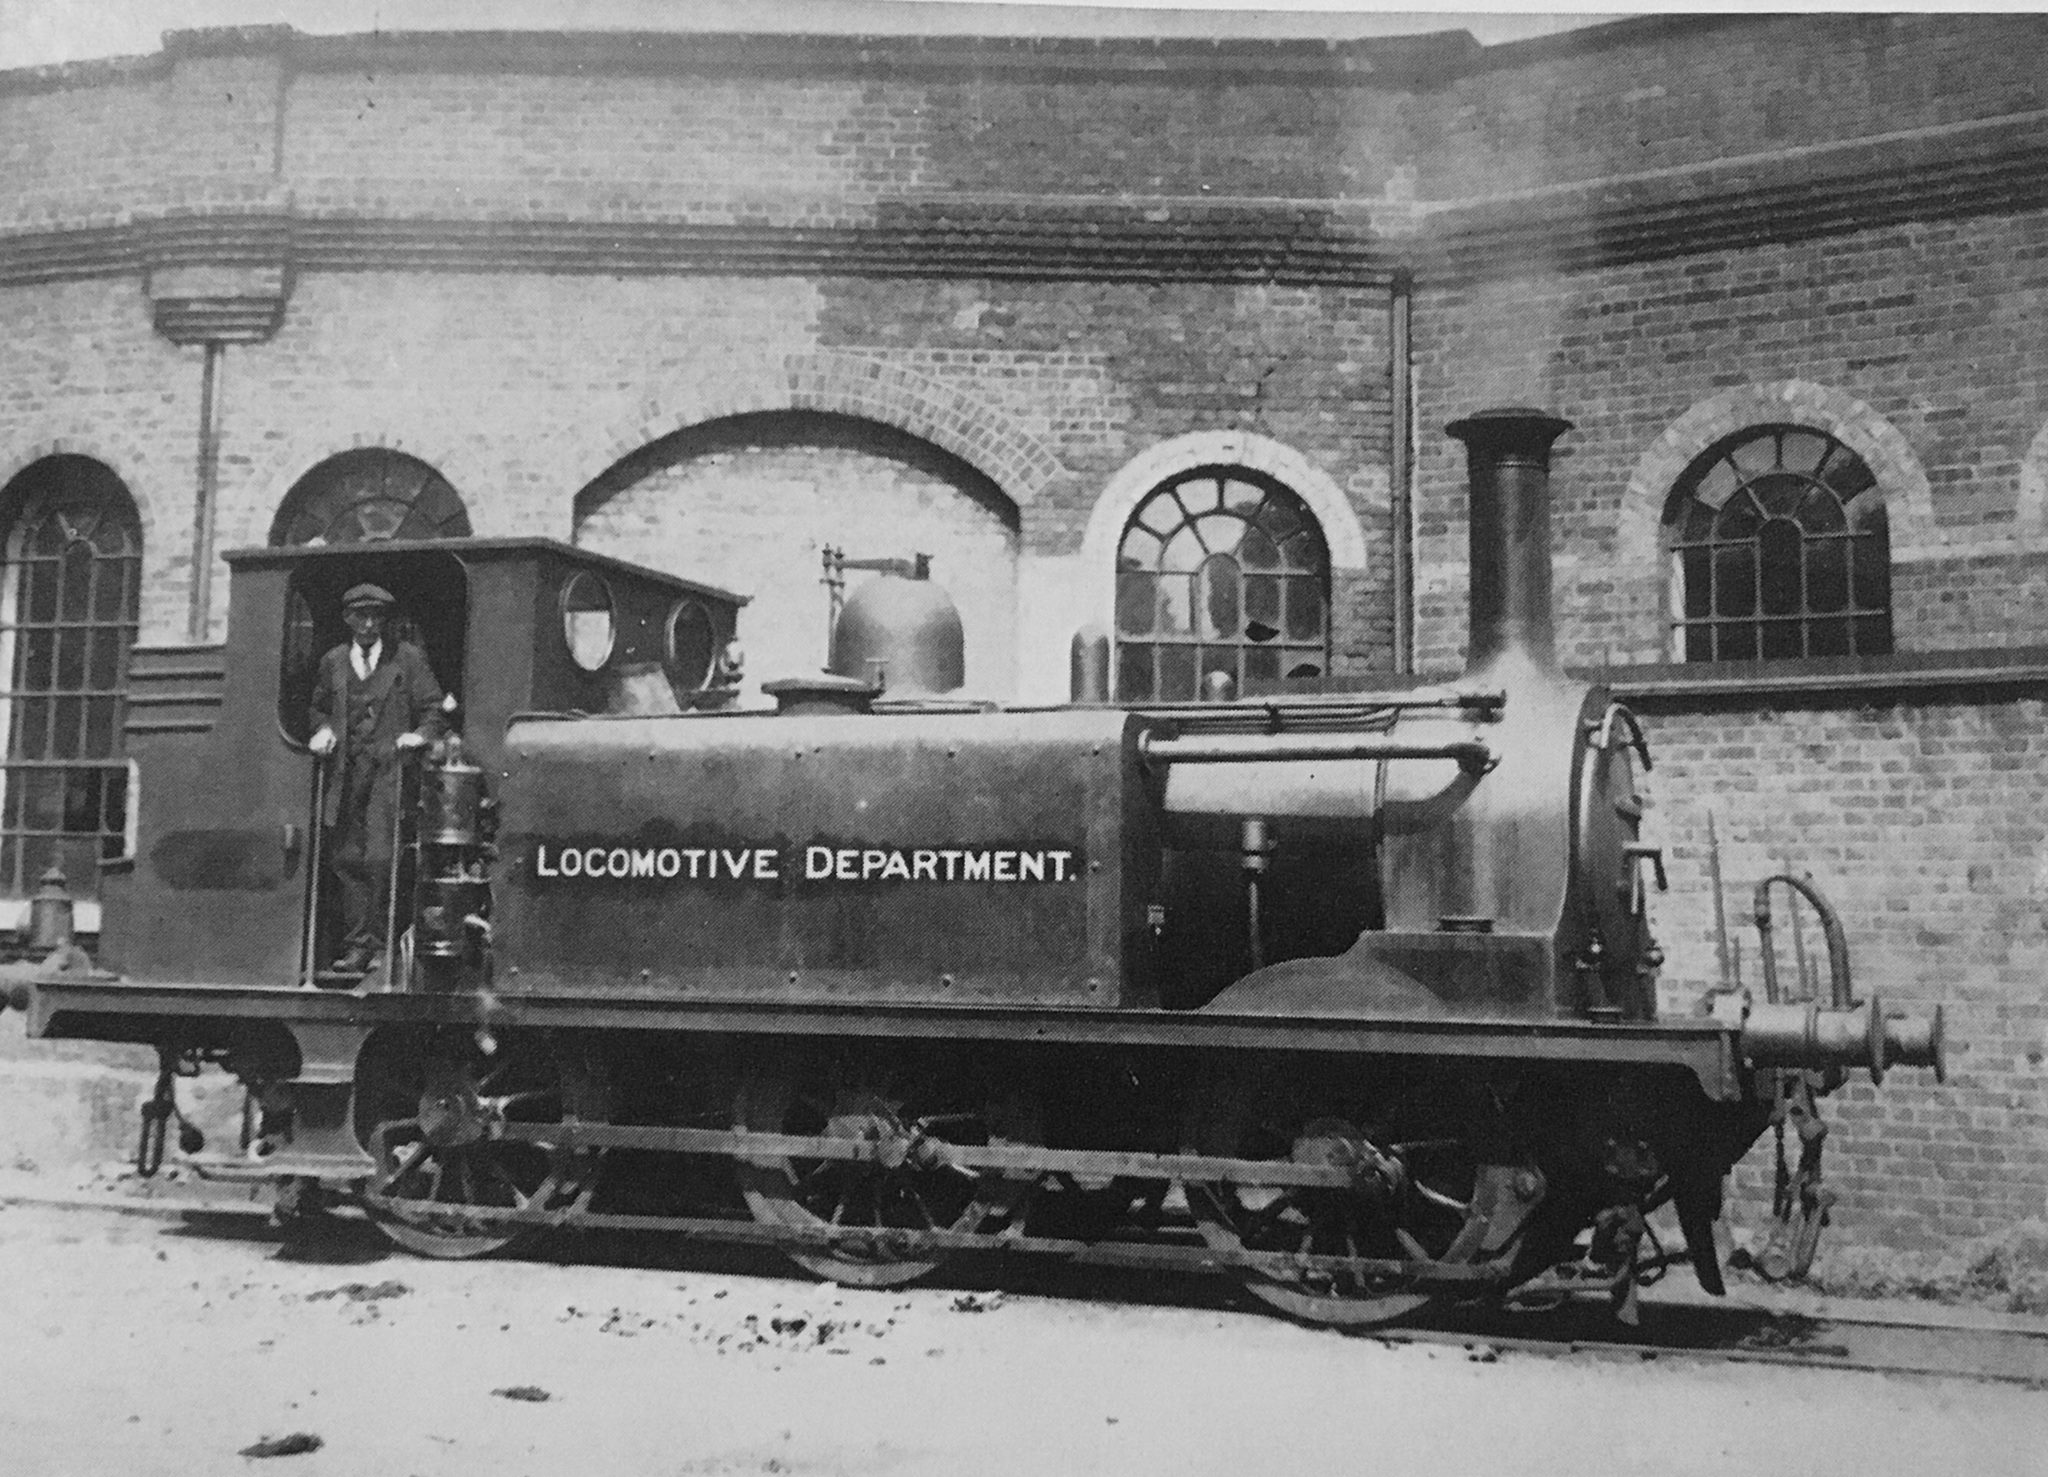 42 Tulsehill lettered Locomotive Department